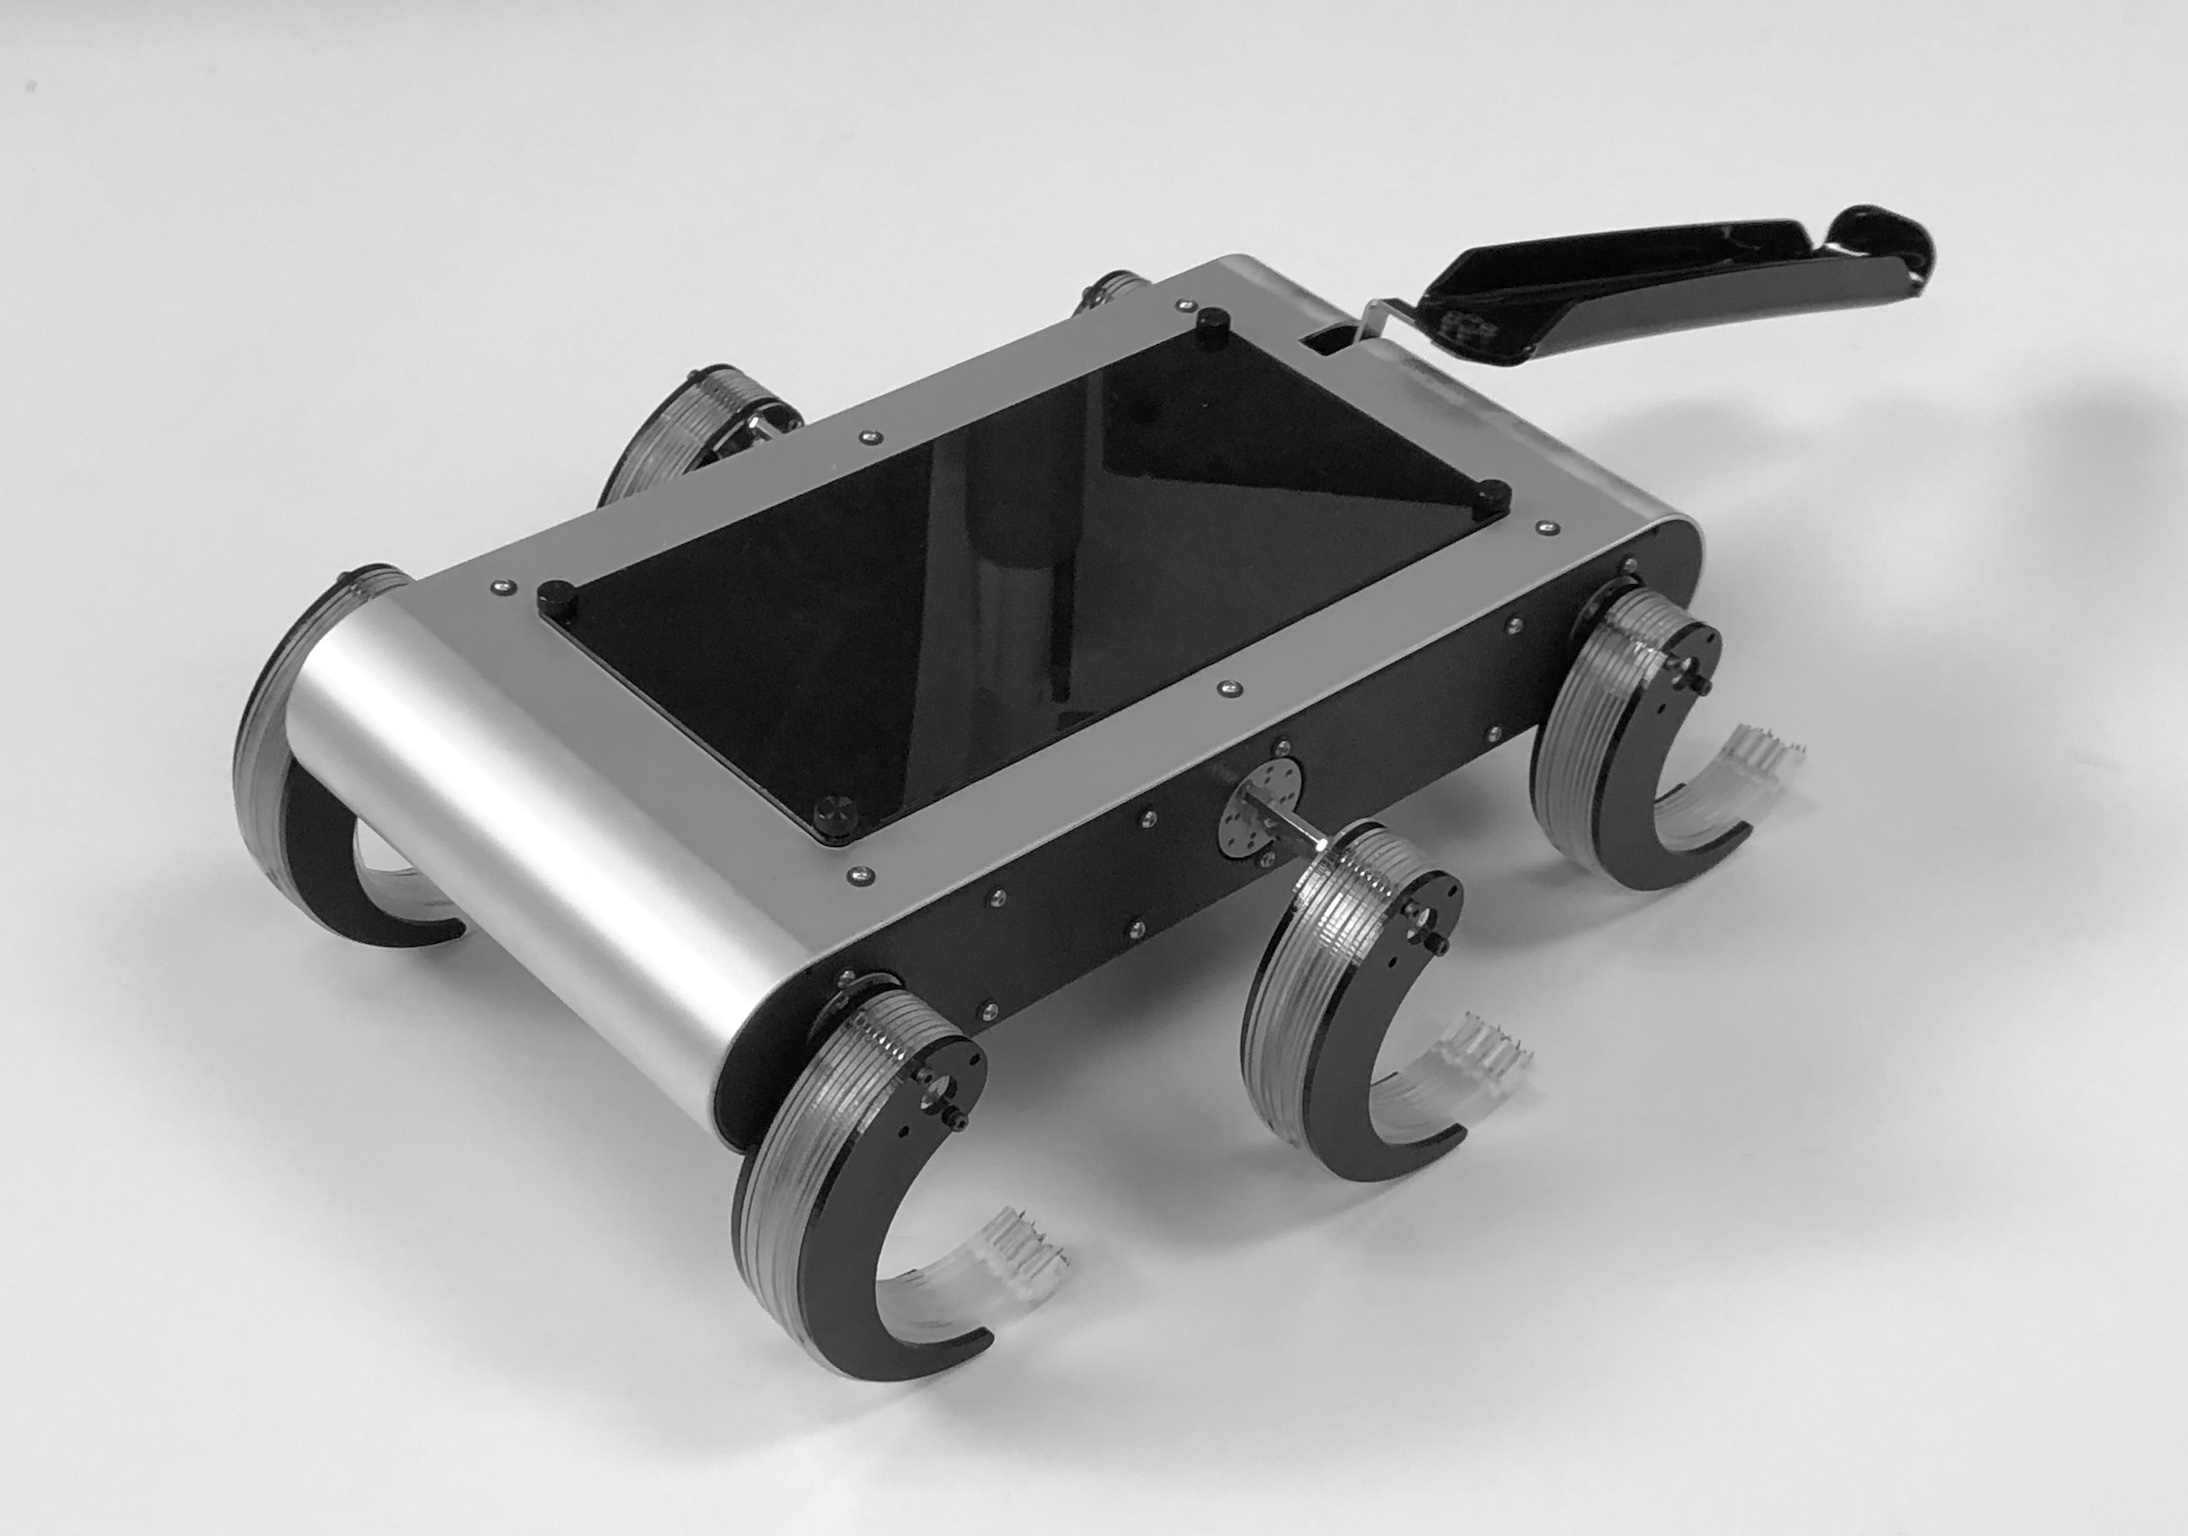 T-RHex is a hexapod robot with spiky feet and a tail